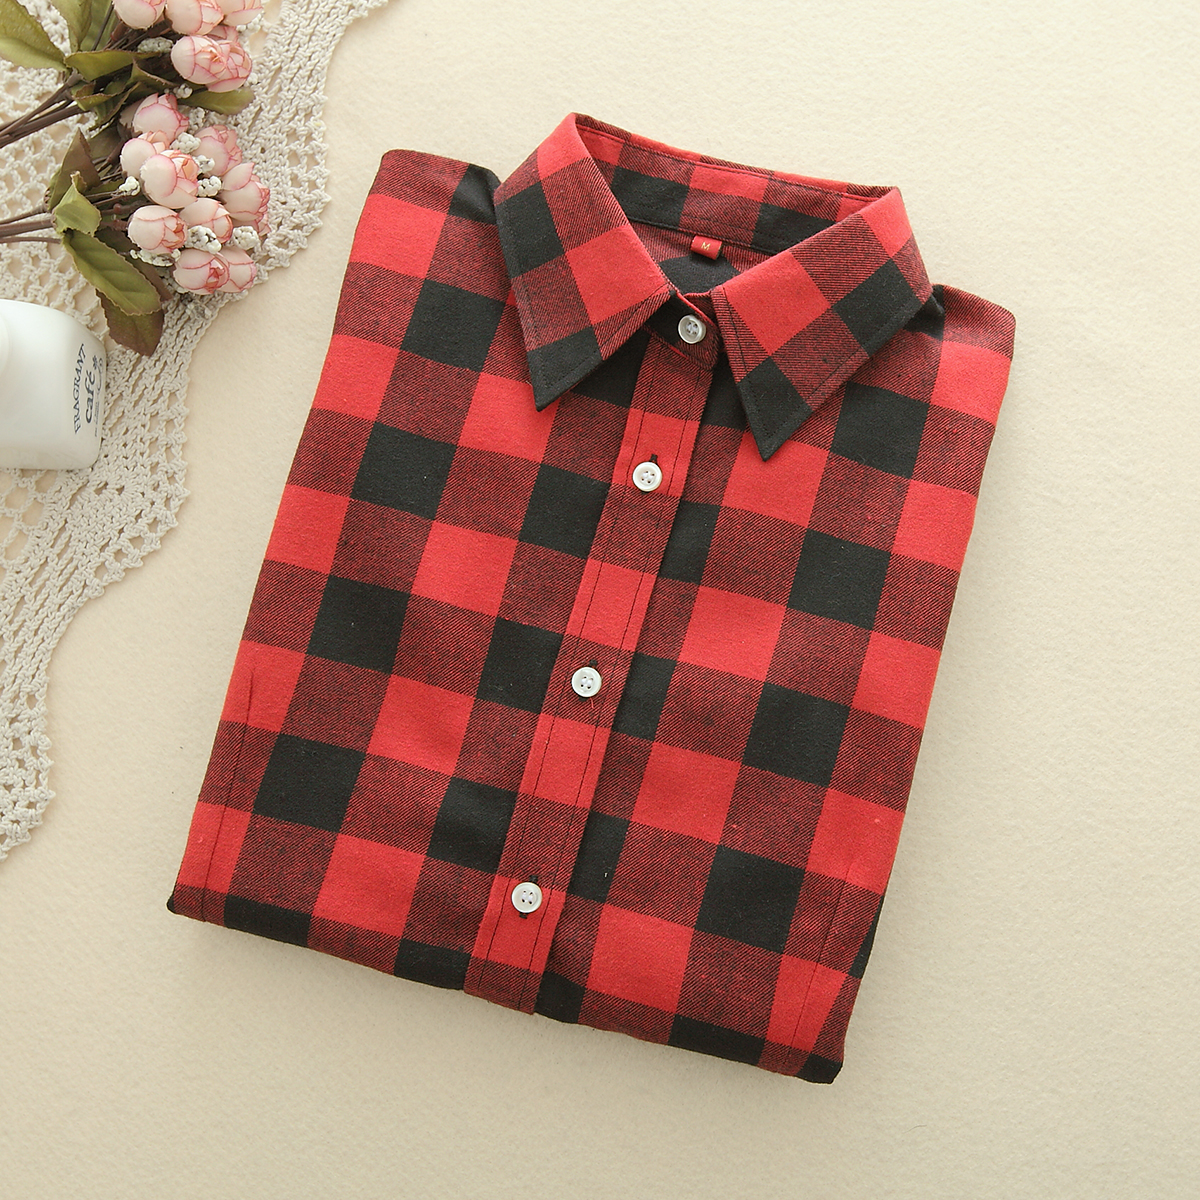 2019 Fashion Plaid Shirt Kvinnlig College Style Damblusar Långärmad Flannel Shirt Plus Storlek Bomull Blusas Office Tops